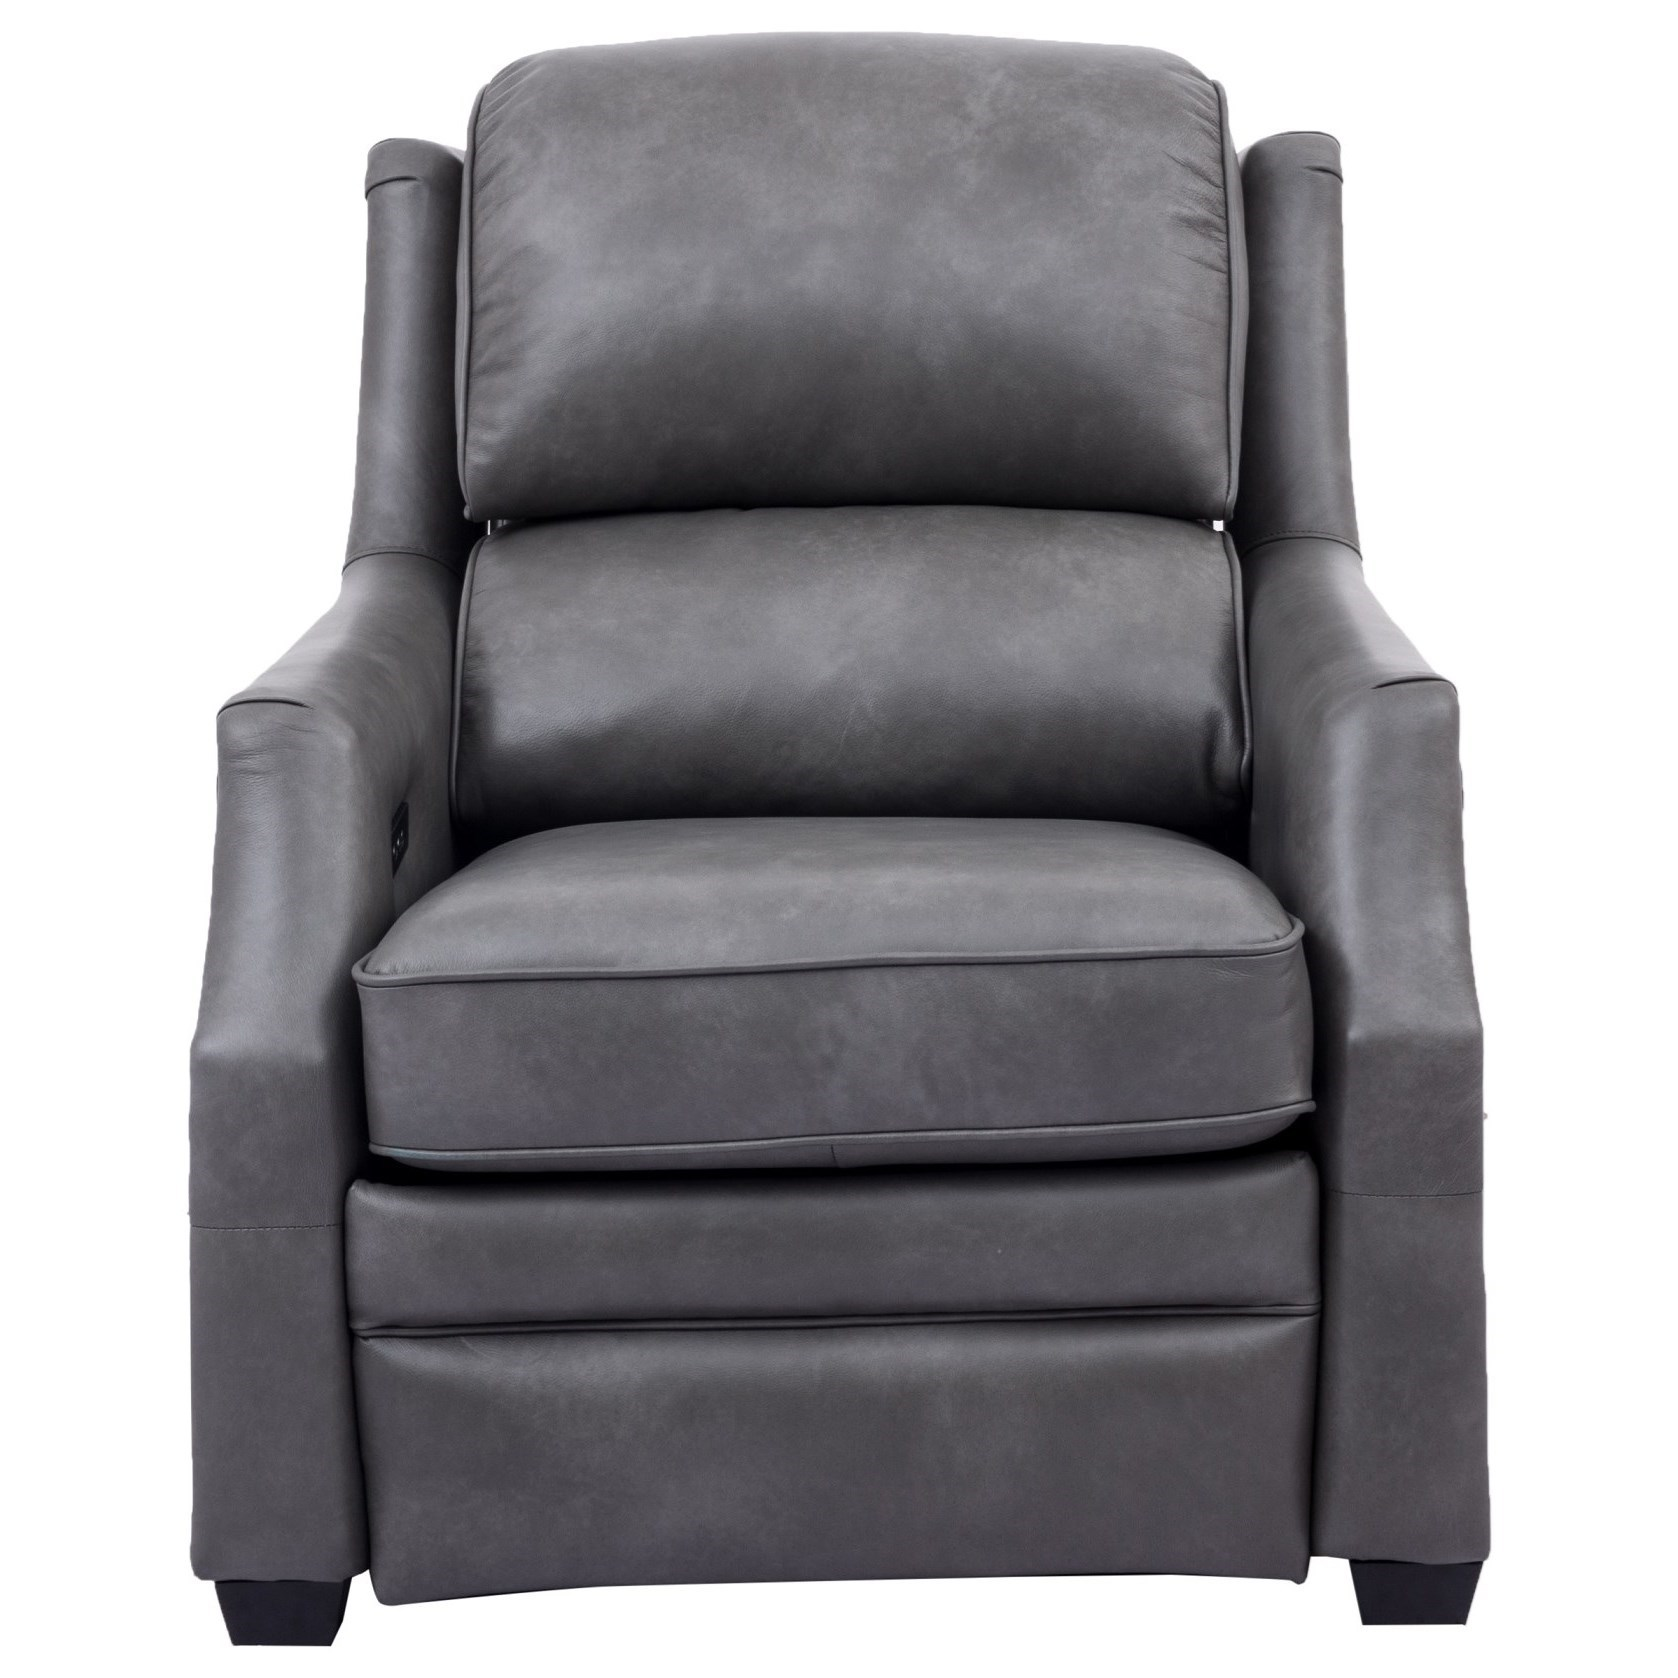 70010 Power Headrest Recliner by Cheers at Lagniappe Home Store